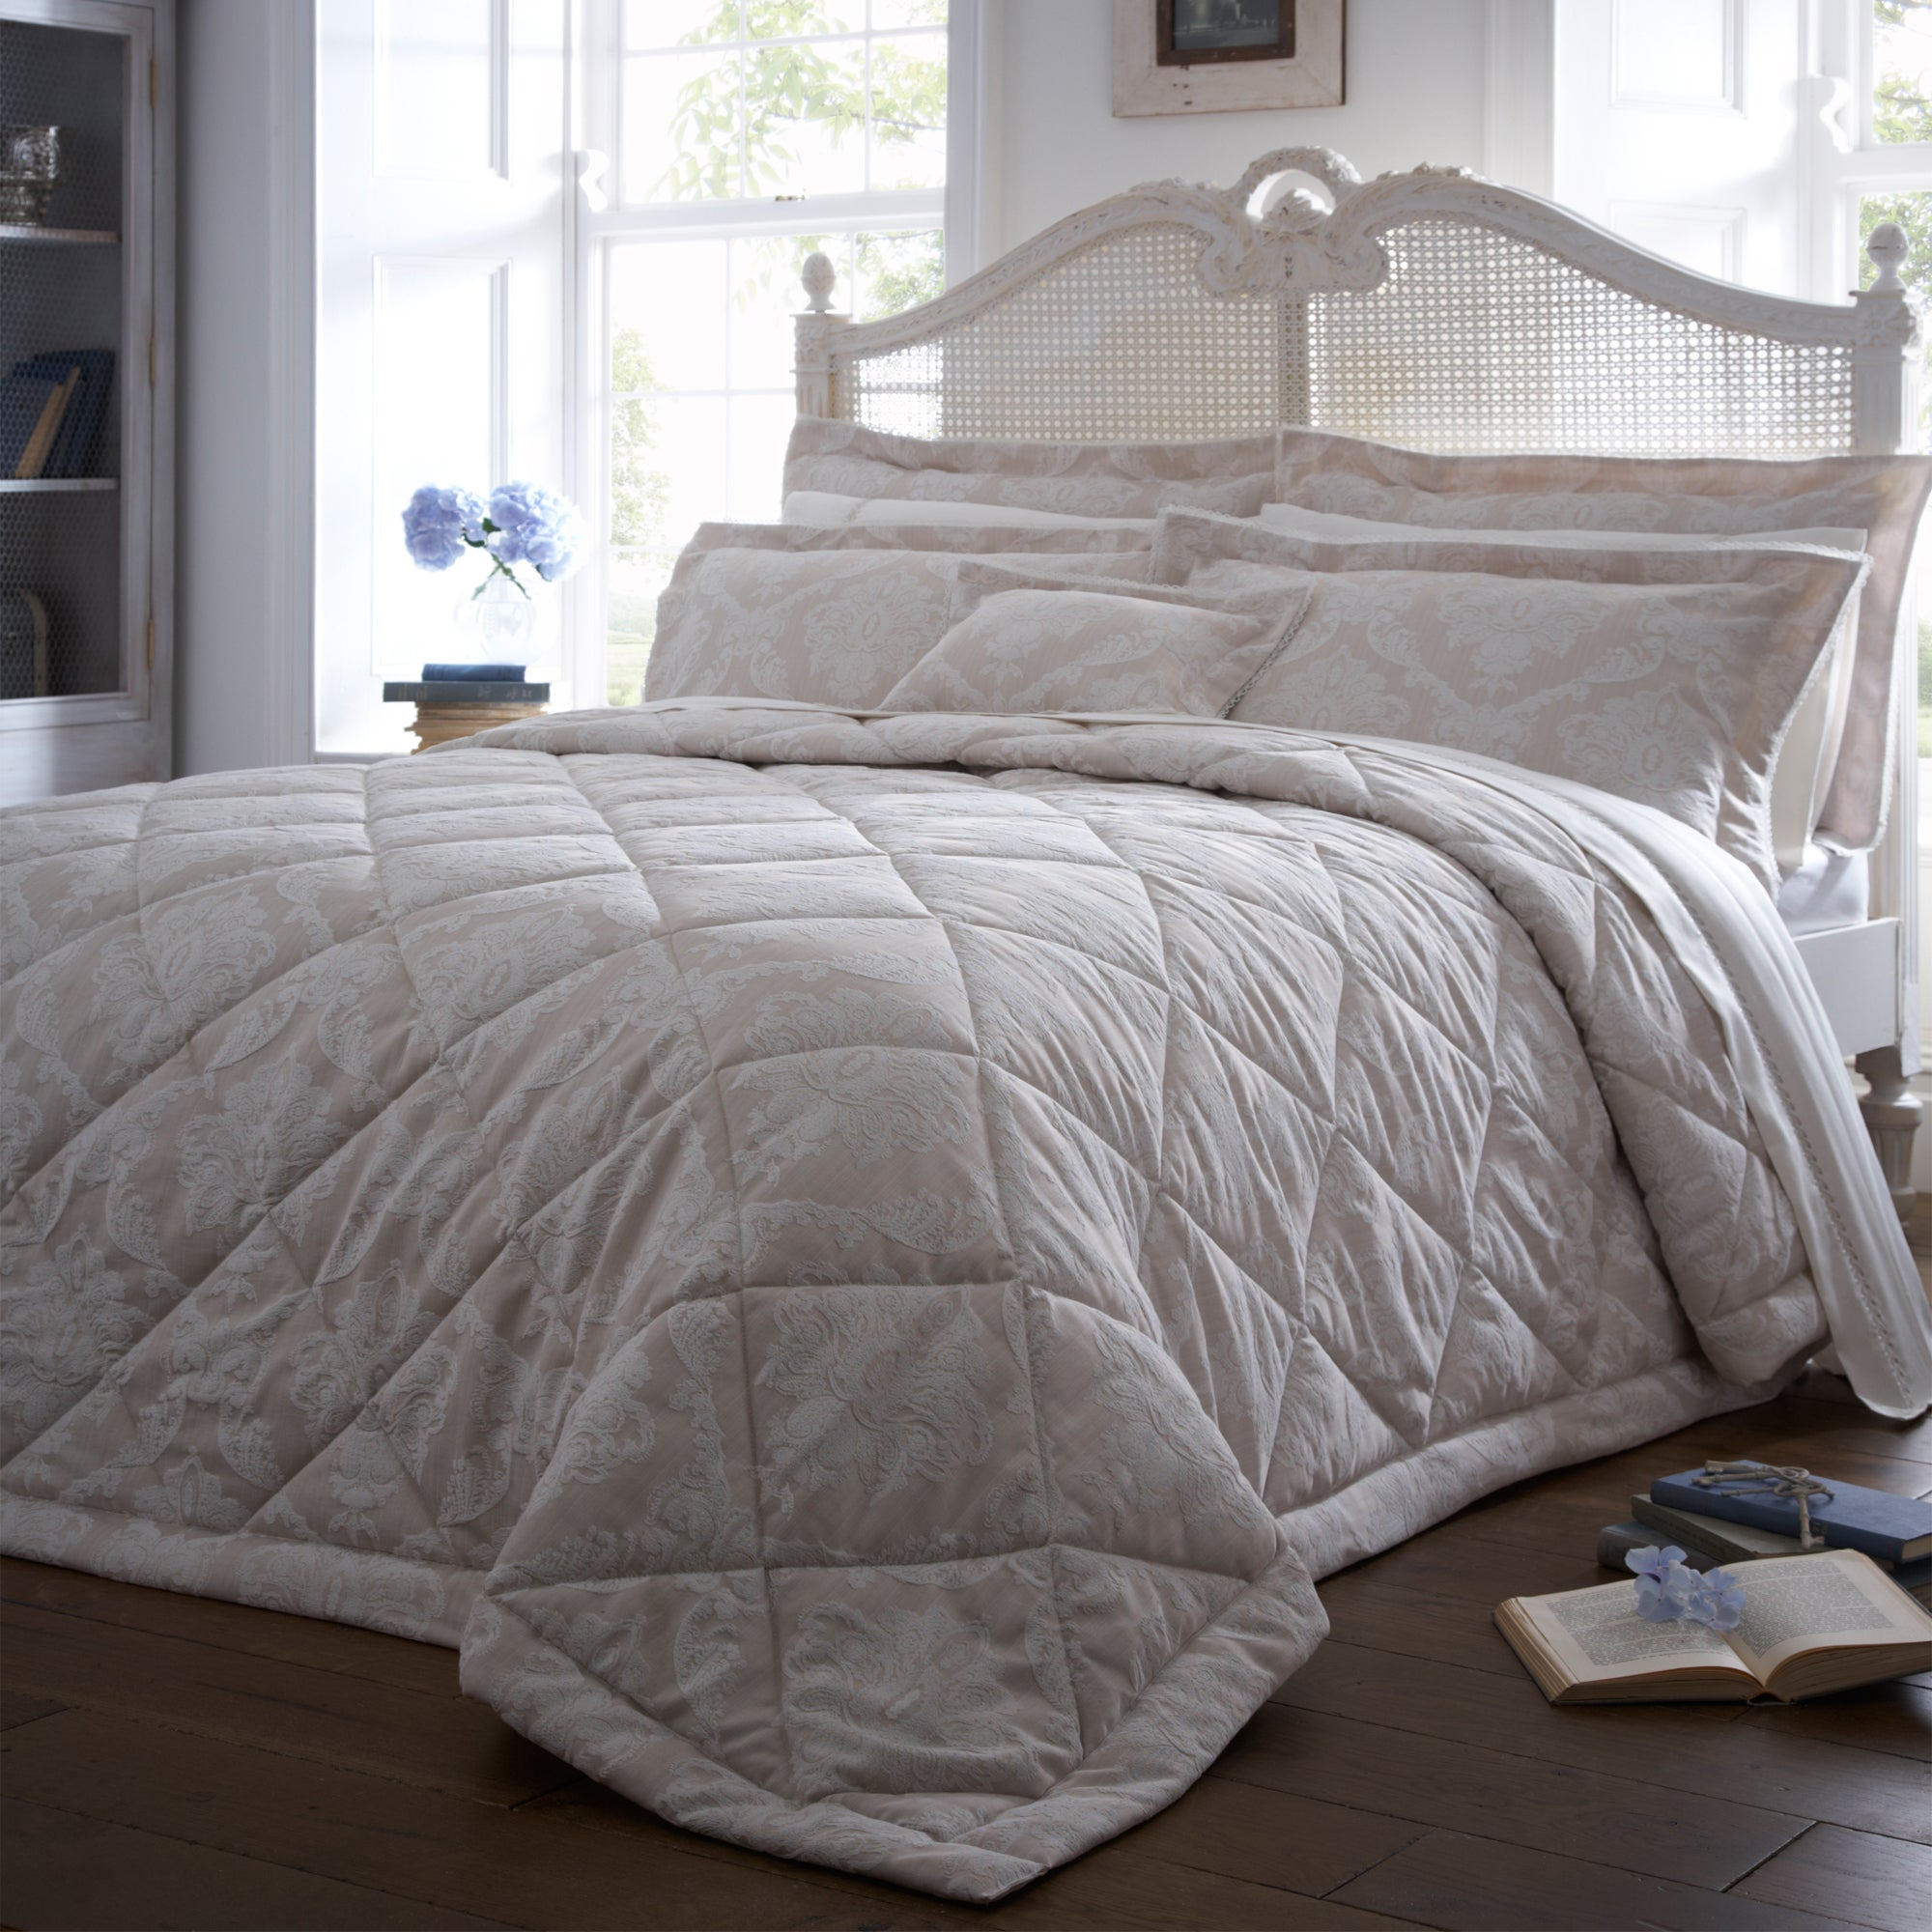 Dorma Natural Aveline Collection Quilted Throw